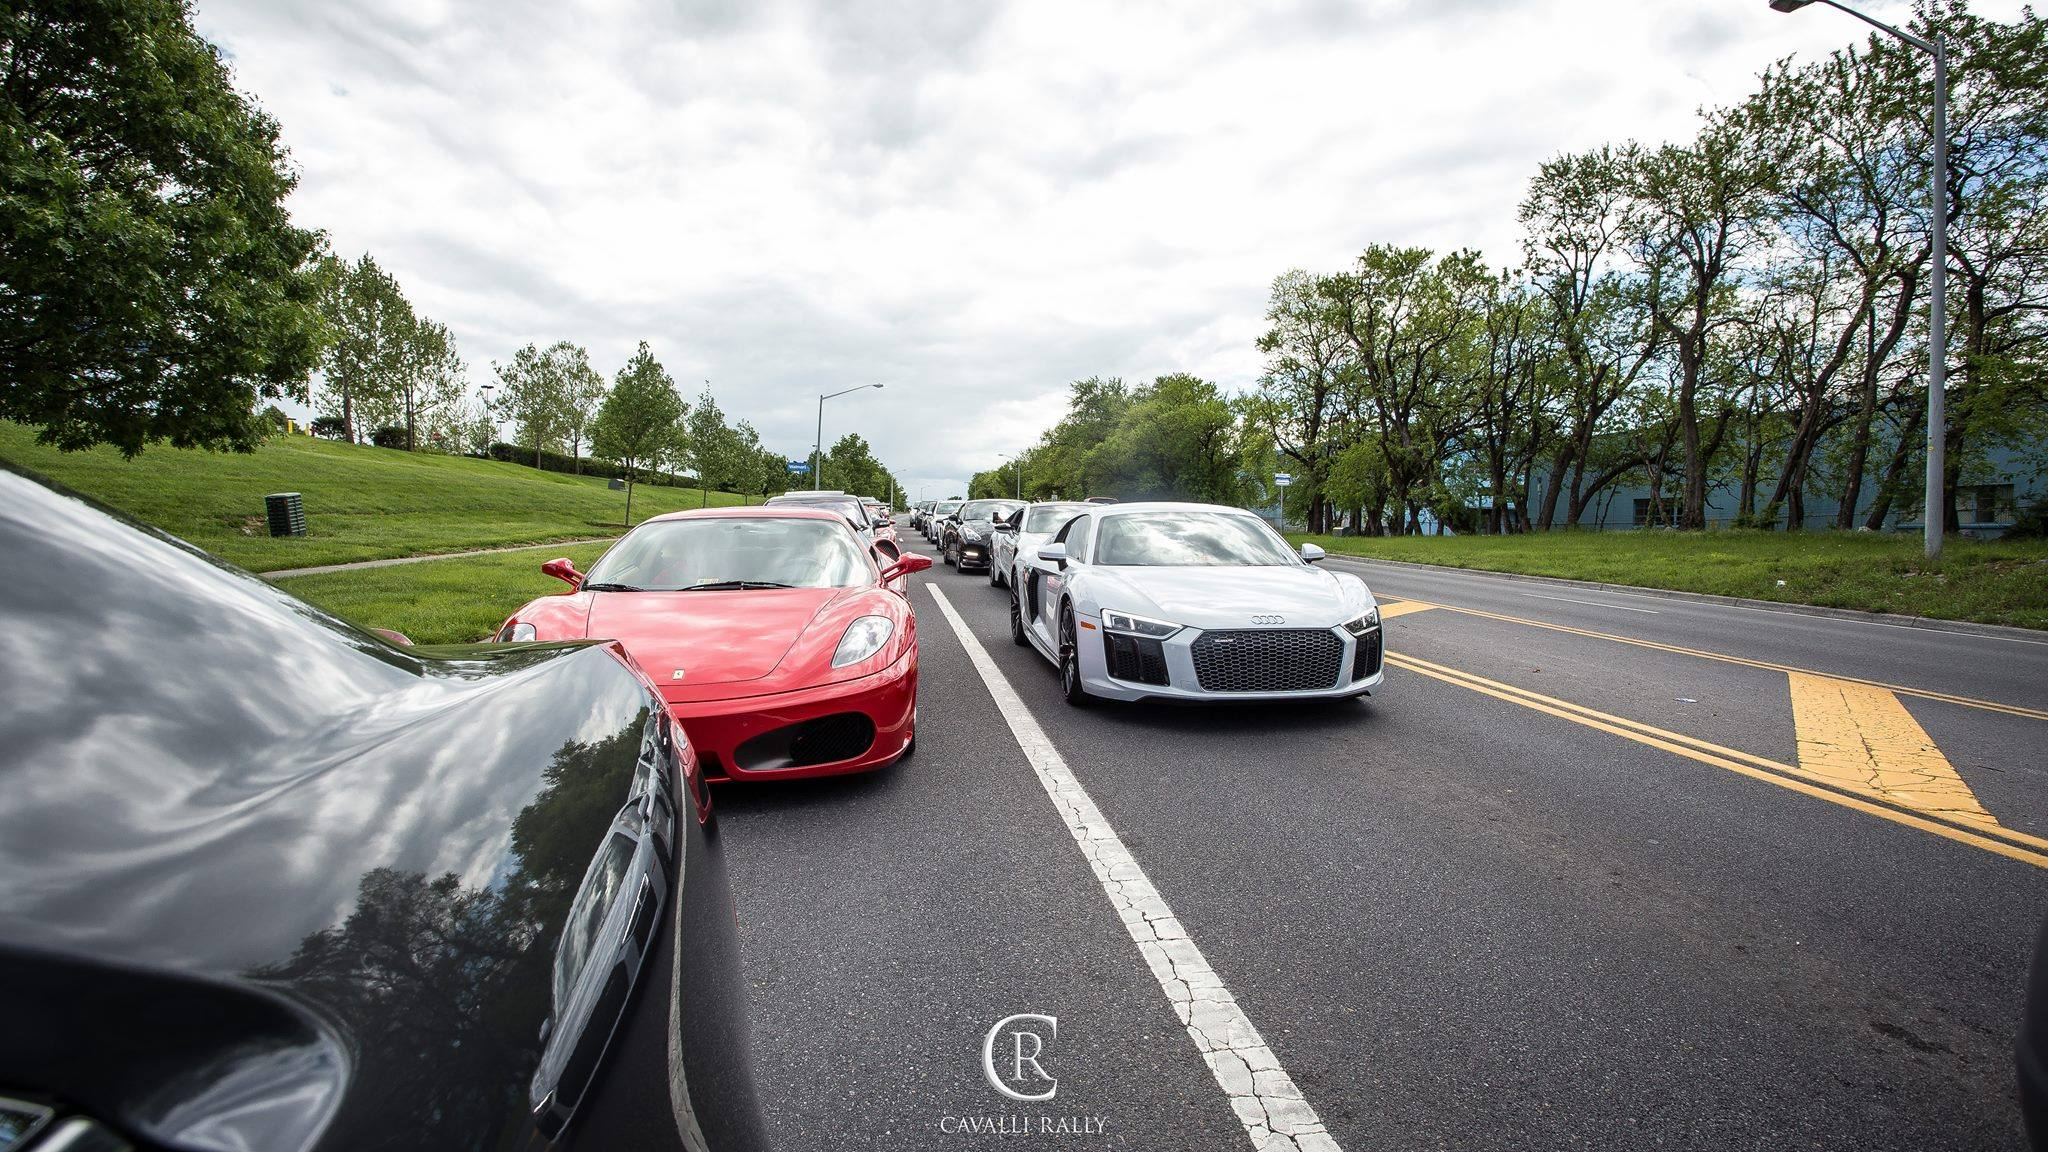 Mind the Gap Rally - September 21st-22ndJoin us for a scenic drive with our 2019 rally to Rocky Gap Casino Resort. Starting from just outside of our nations capital we are going to be driving some of the best roads the east coast can provide before an overnight stay at the luxurious Rocky Gap Casino Resort.